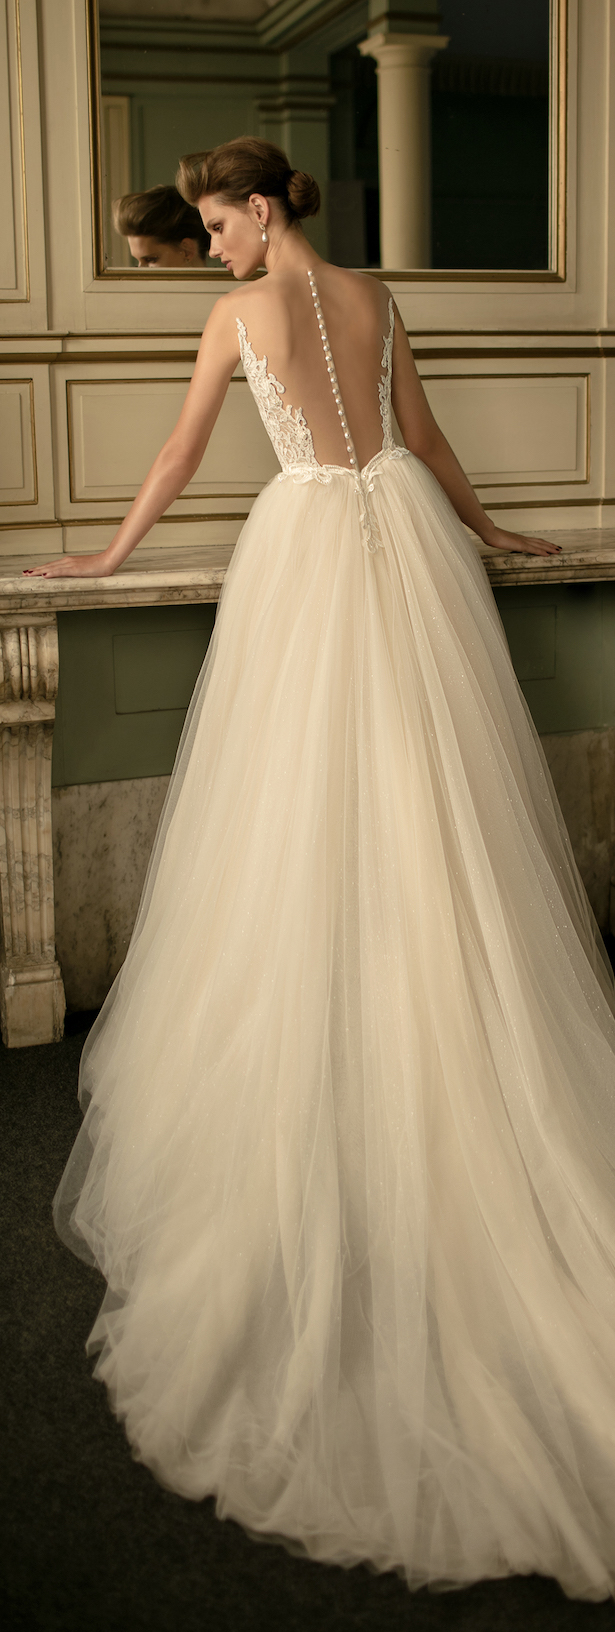 Berta Bridal Gowns : Wedding dress by berta spring bridal collection